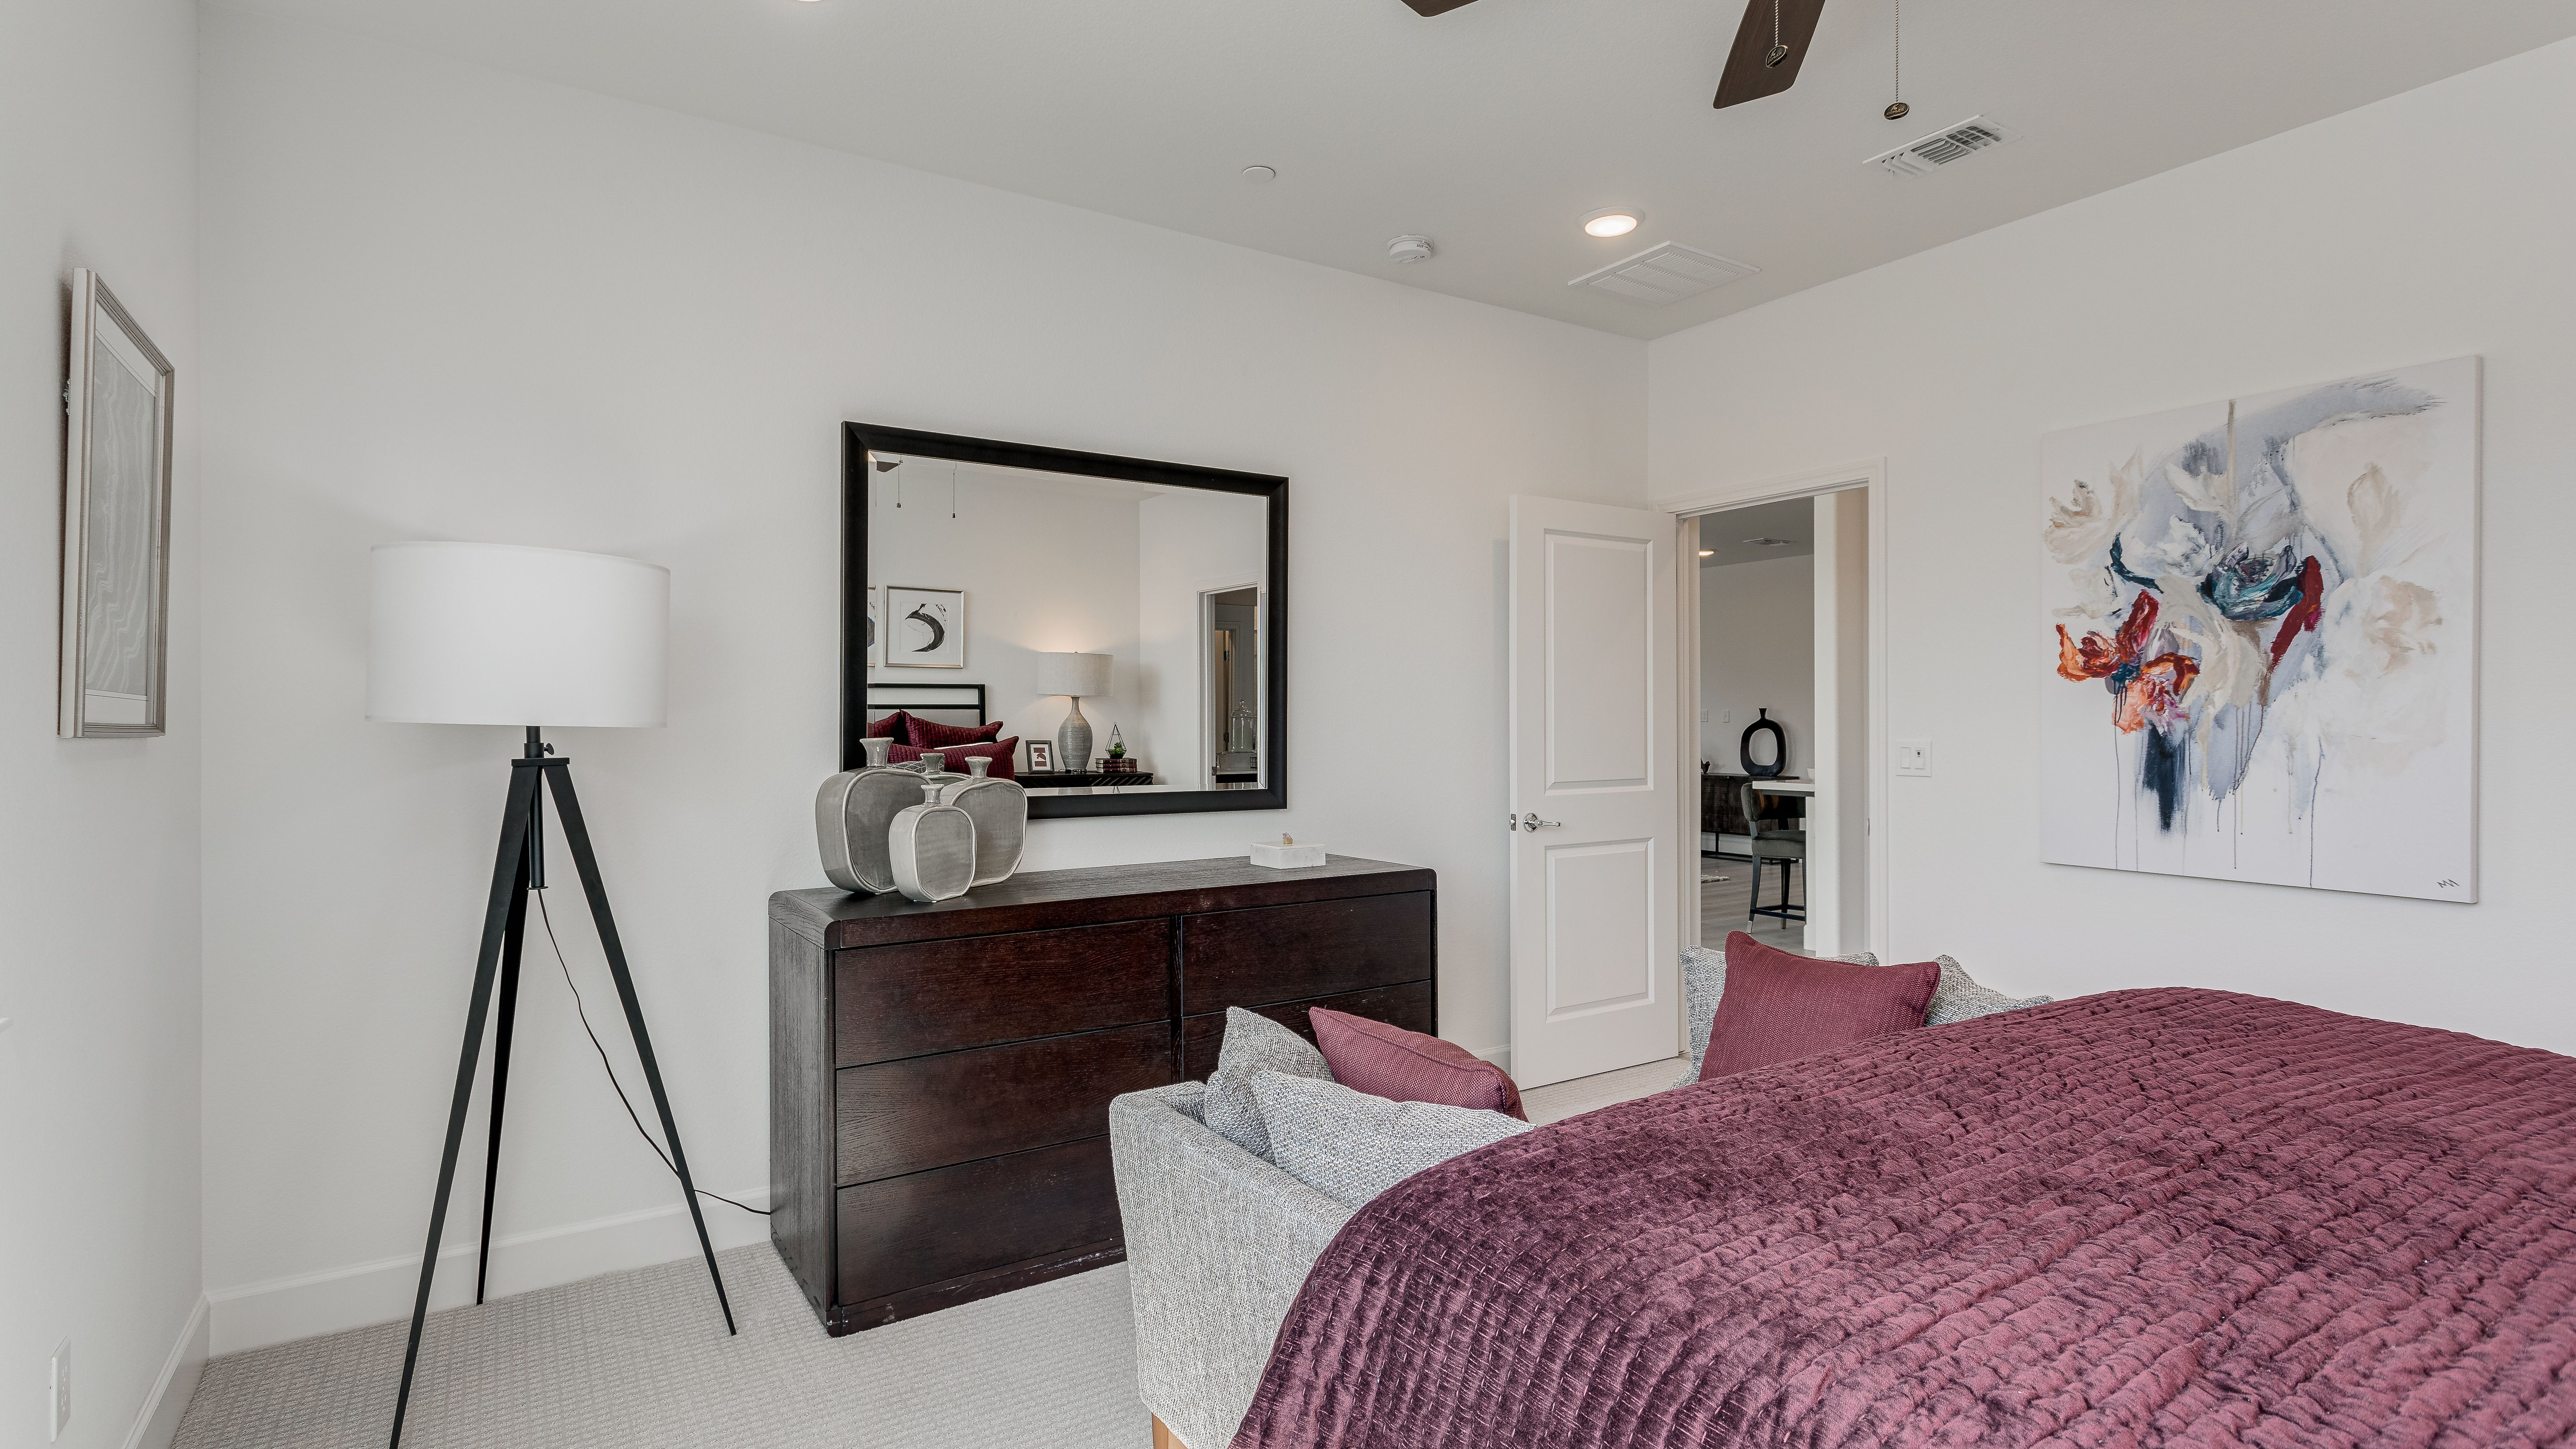 Bedroom featured in the Residence 3 By Taylor Morrison in Stockton-Lodi, CA